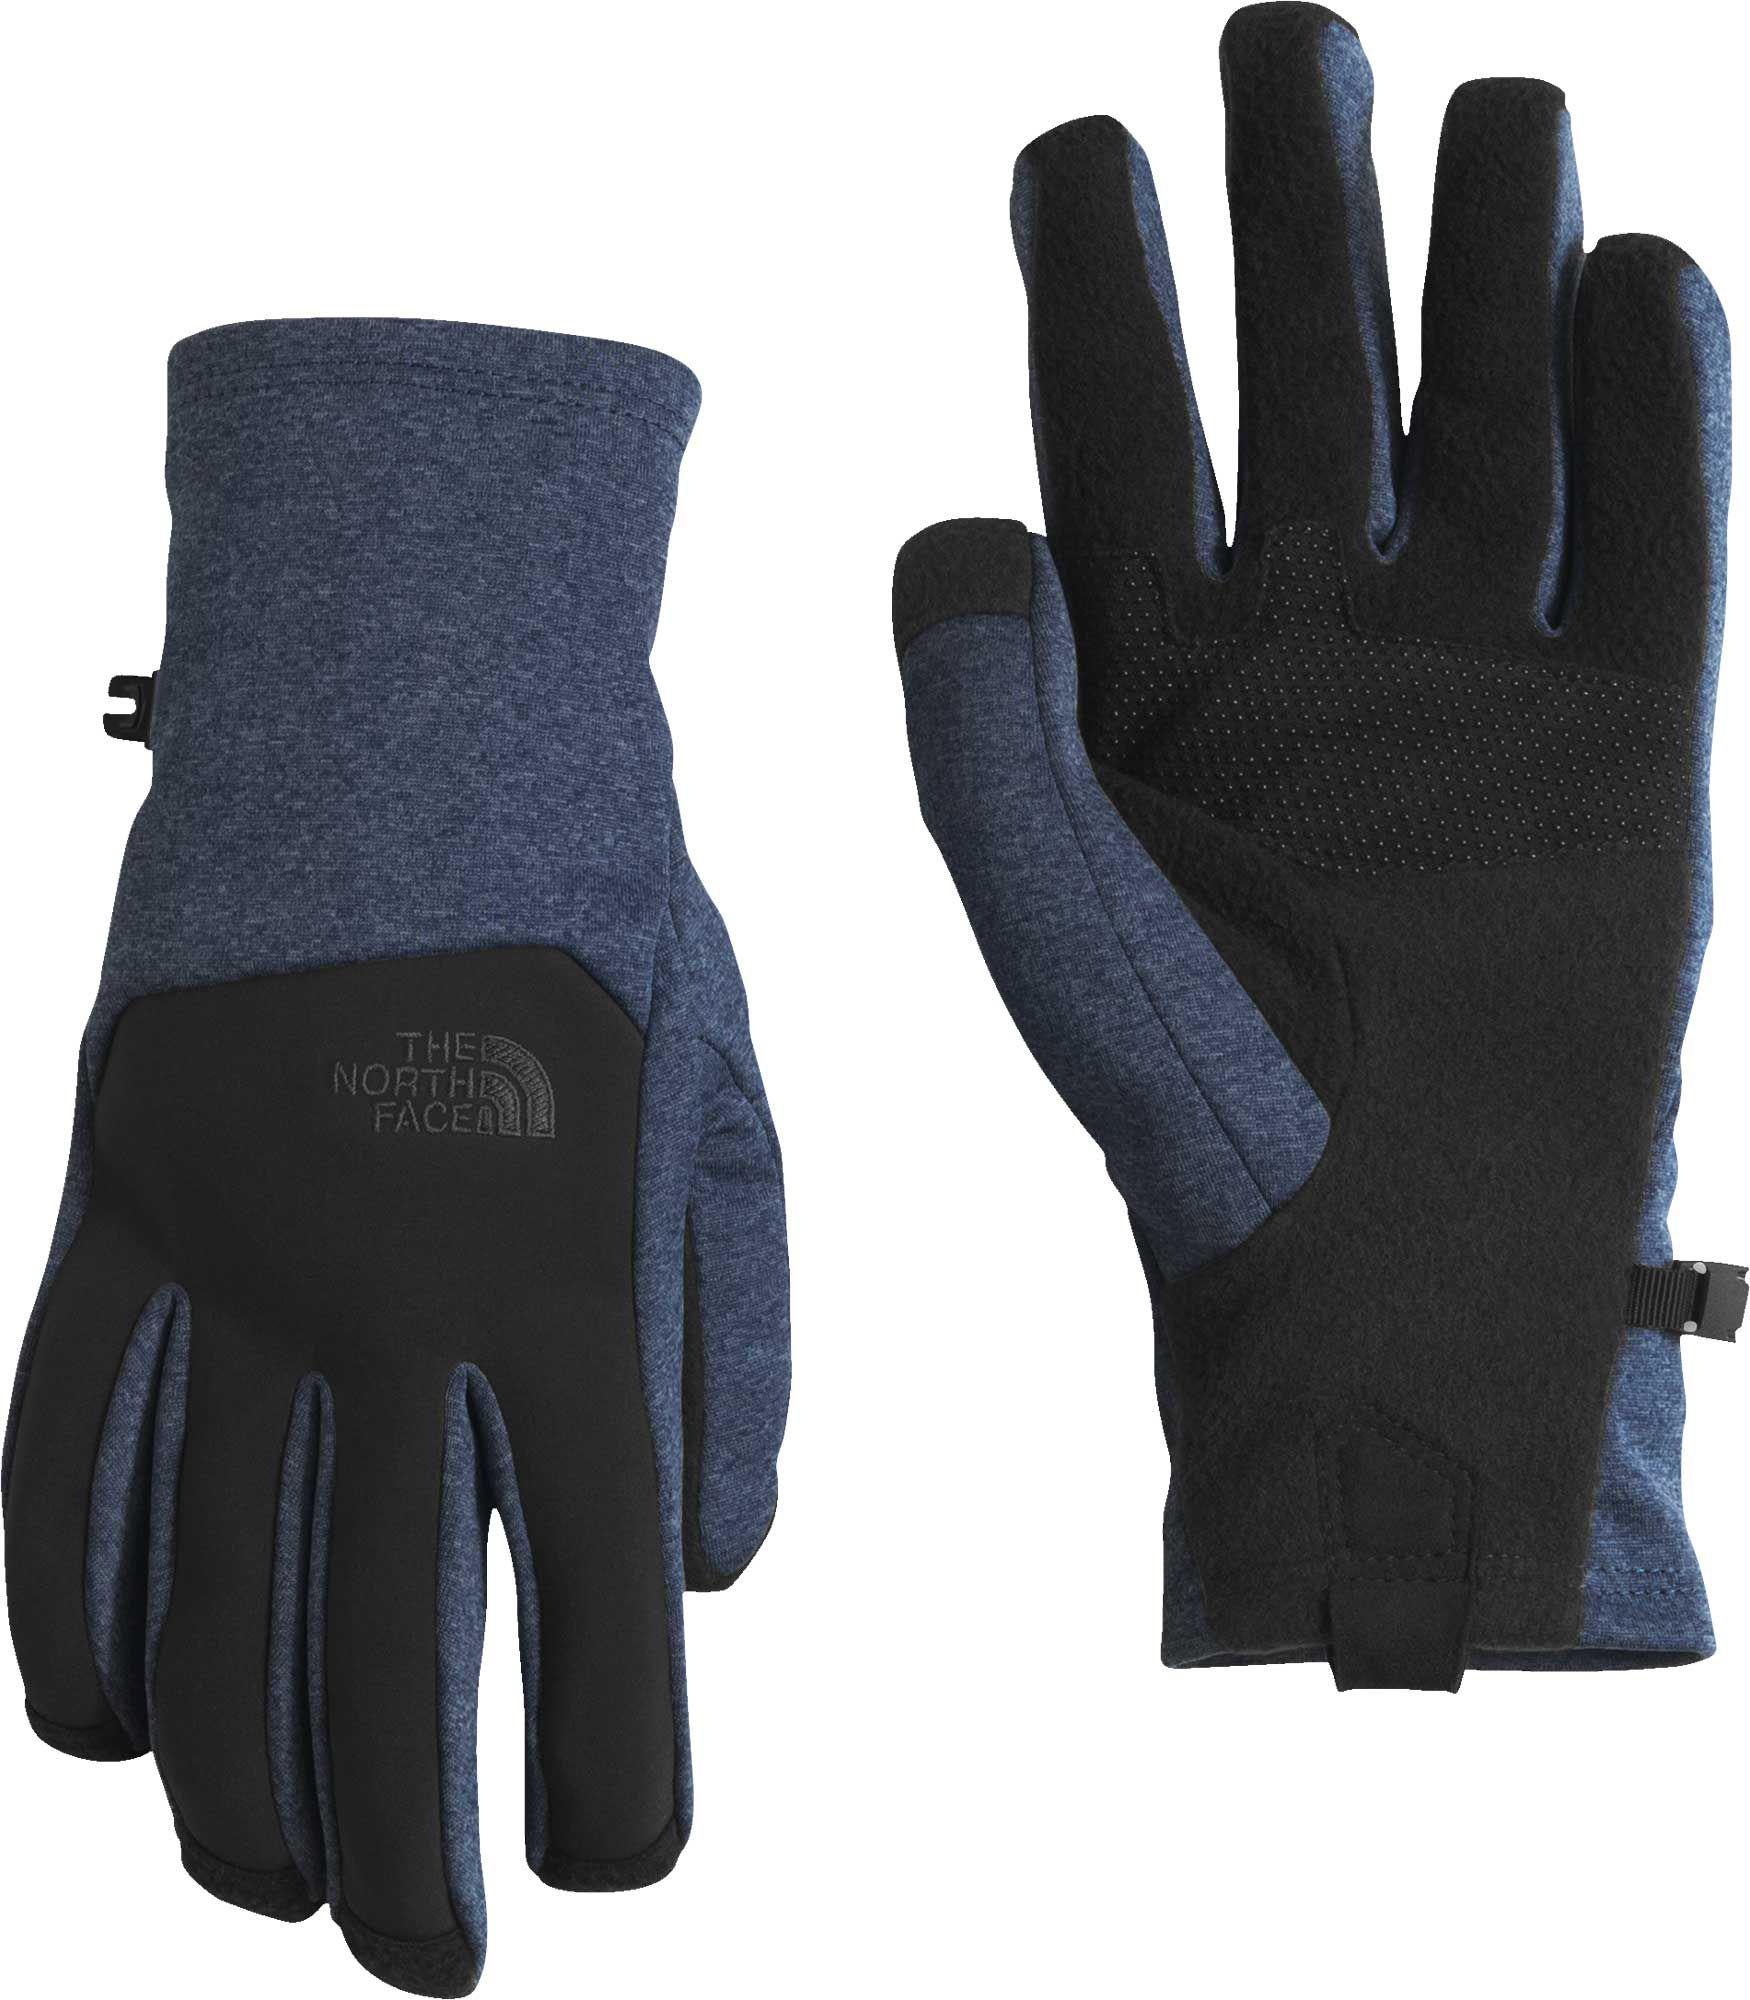 479e54b5c The North Face - Blue Canyonwall Etip Gloves for Men - Lyst